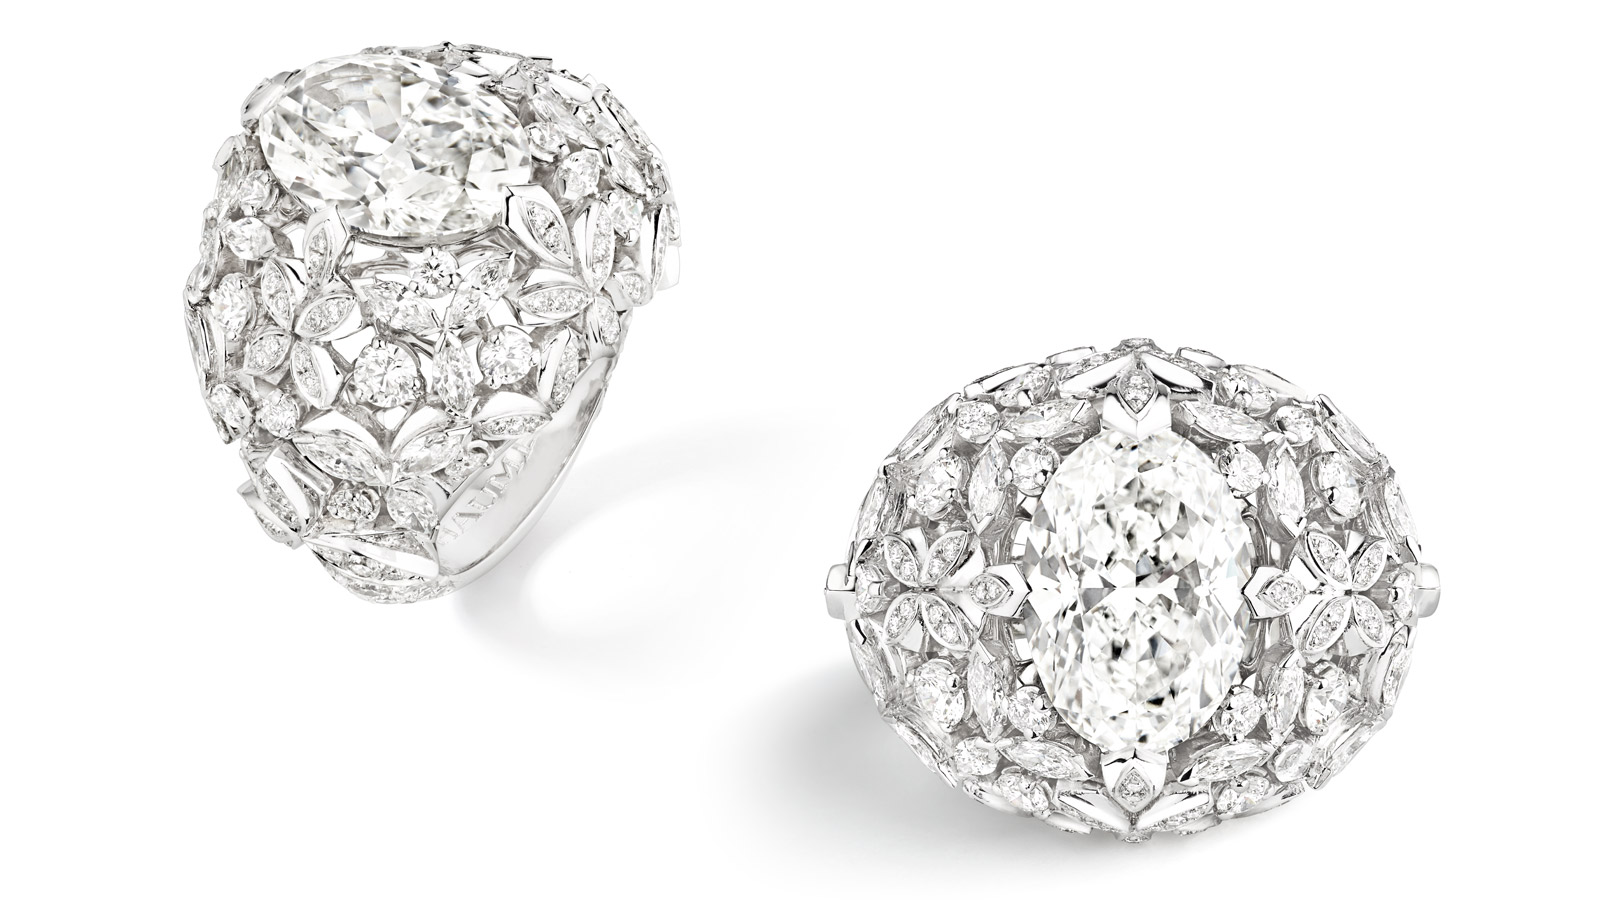 Chaumet 'Promenades Imperiales' ring in 18k white gold, with a 5.82 ct oval cut diamond, and diamond accents